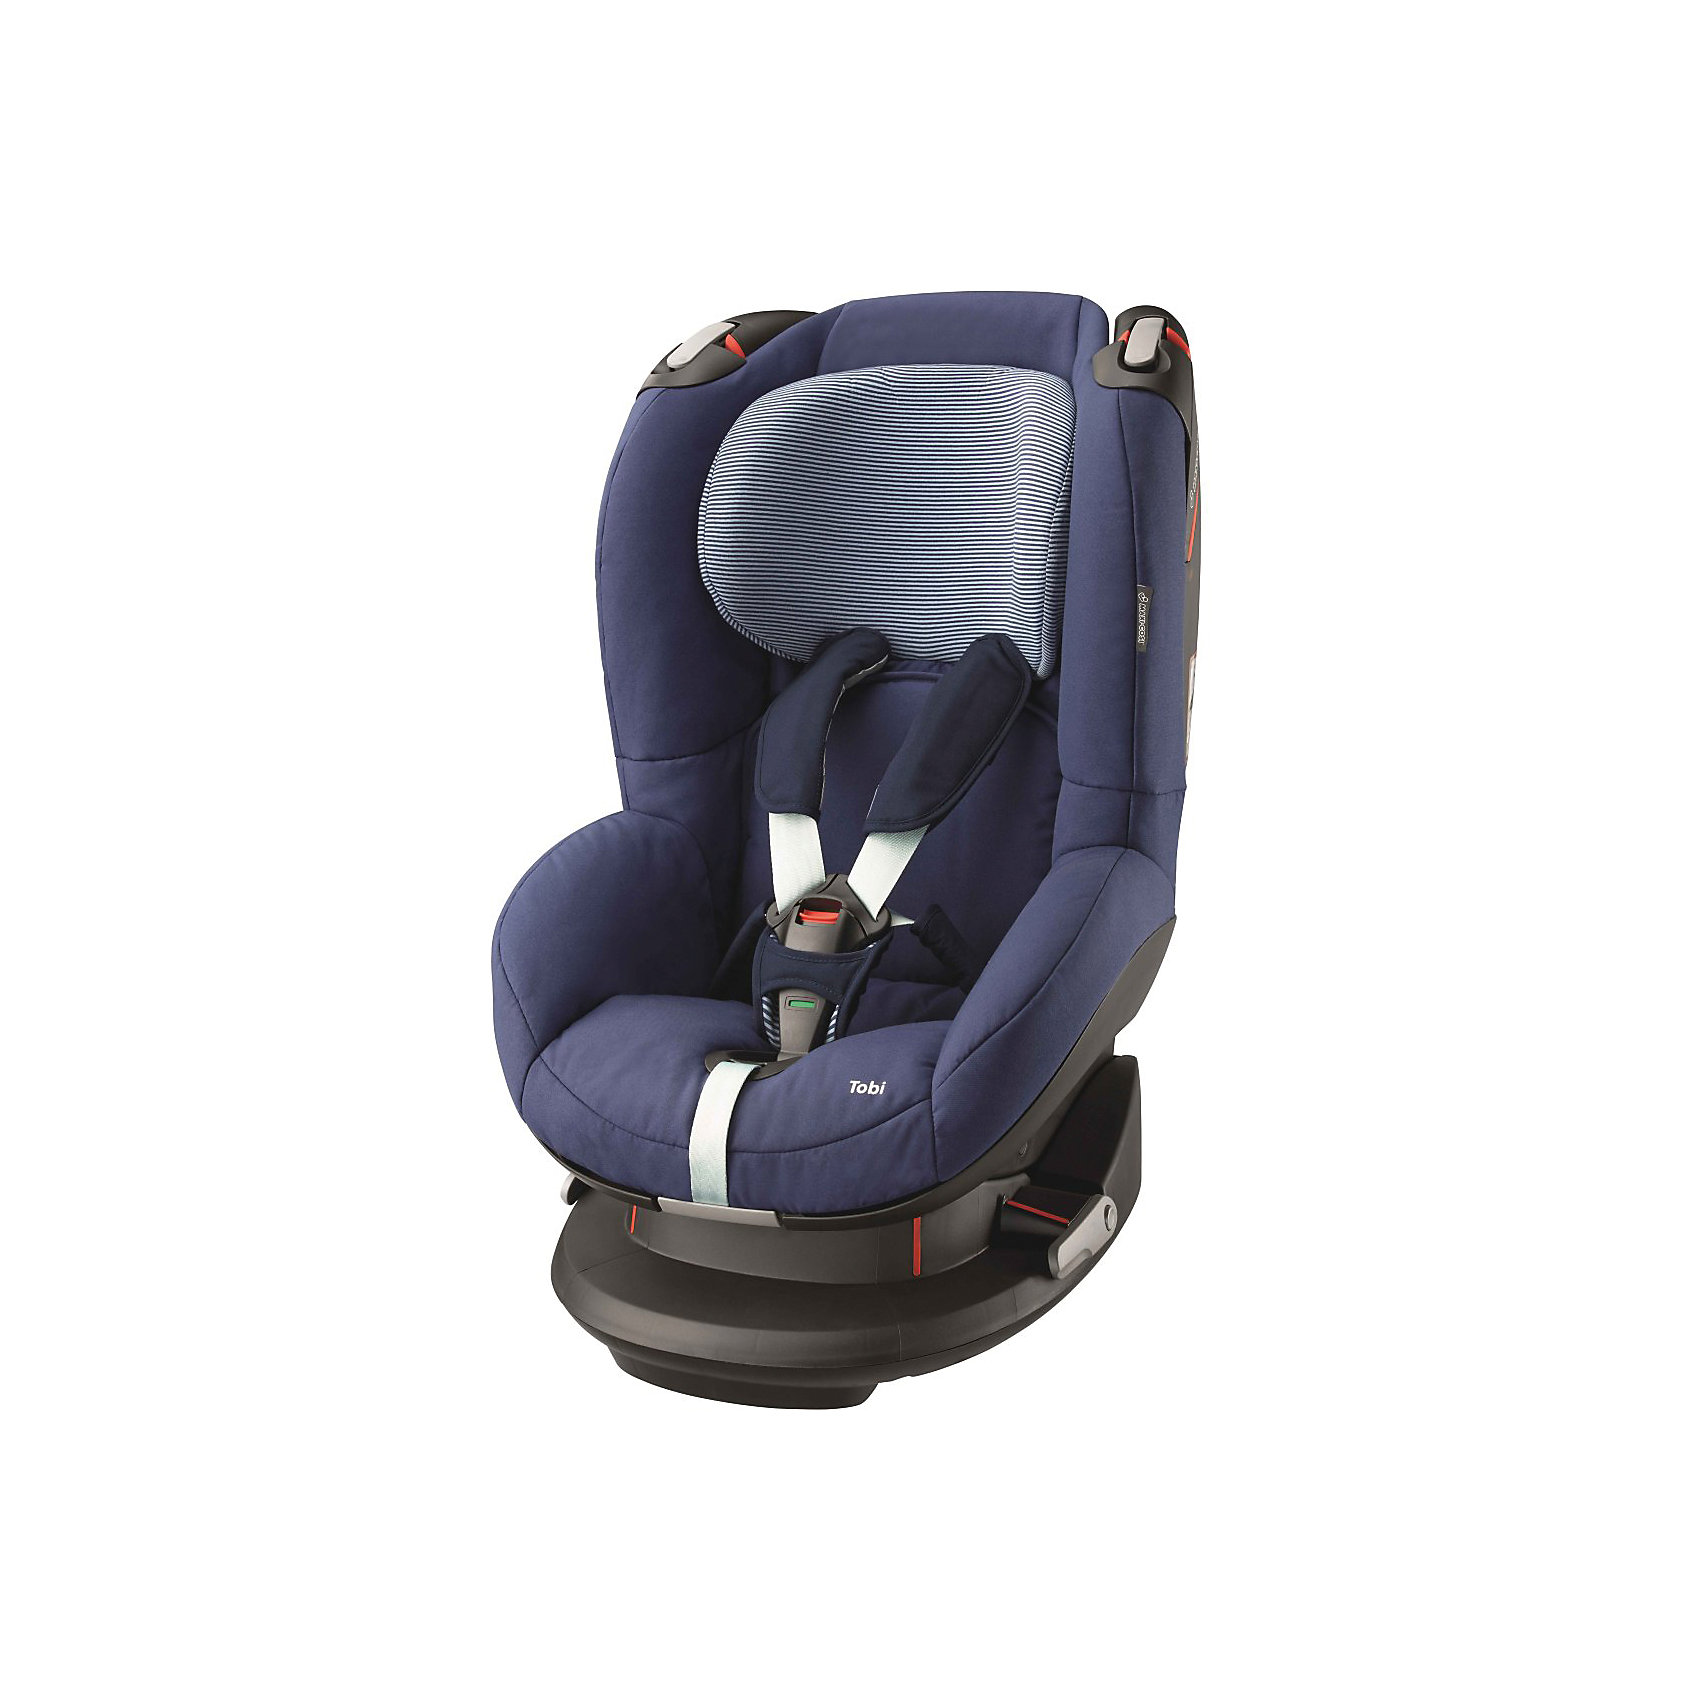 Автокресло Tobi 9-18 кг., Maxi-Cosi, River Blue